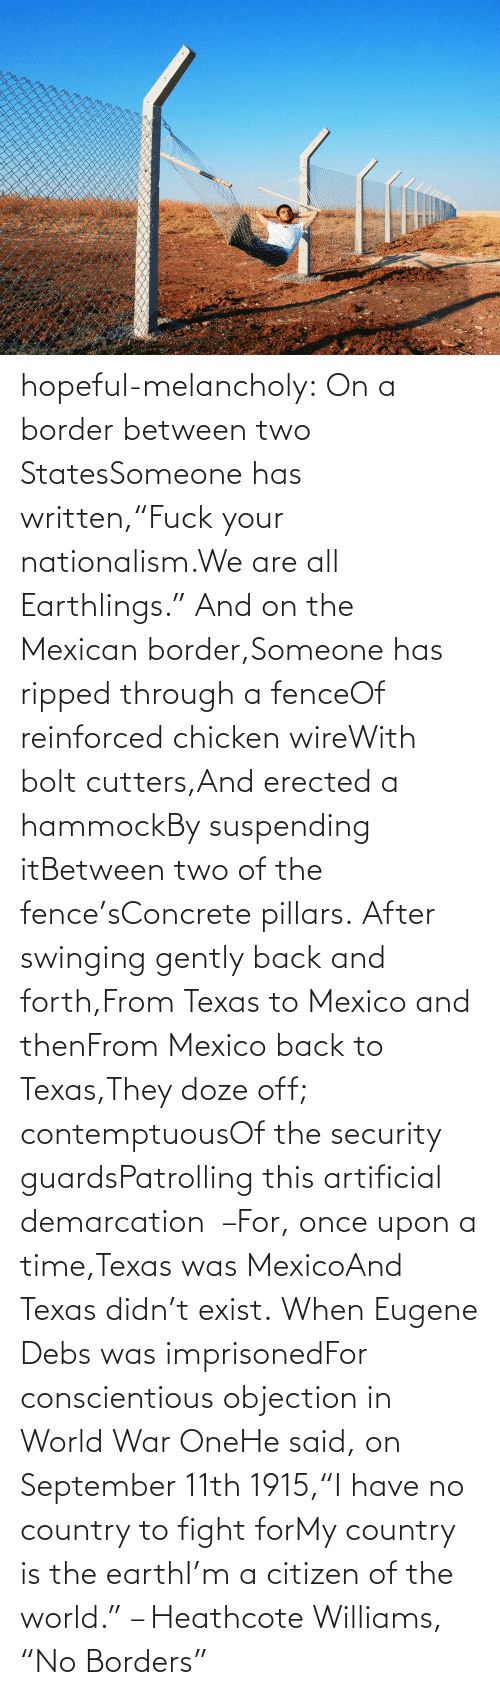 """We Are All: hopeful-melancholy:  On a border between two StatesSomeone has written,""""Fuck your nationalism.We are all Earthlings."""" And on the Mexican border,Someone has ripped through a fenceOf reinforced chicken wireWith bolt cutters,And erected a hammockBy suspending itBetween two of the fence'sConcrete pillars. After swinging gently back and forth,From Texas to Mexico and thenFrom Mexico back to Texas,They doze off; contemptuousOf the security guardsPatrolling this artificial demarcation –For, once upon a time,Texas was MexicoAnd Texas didn't exist. When Eugene Debs was imprisonedFor conscientious objection in World War OneHe said, on September 11th 1915,""""I have no country to fight forMy country is the earthI'm a citizen of the world."""" – Heathcote Williams, """"No Borders"""""""